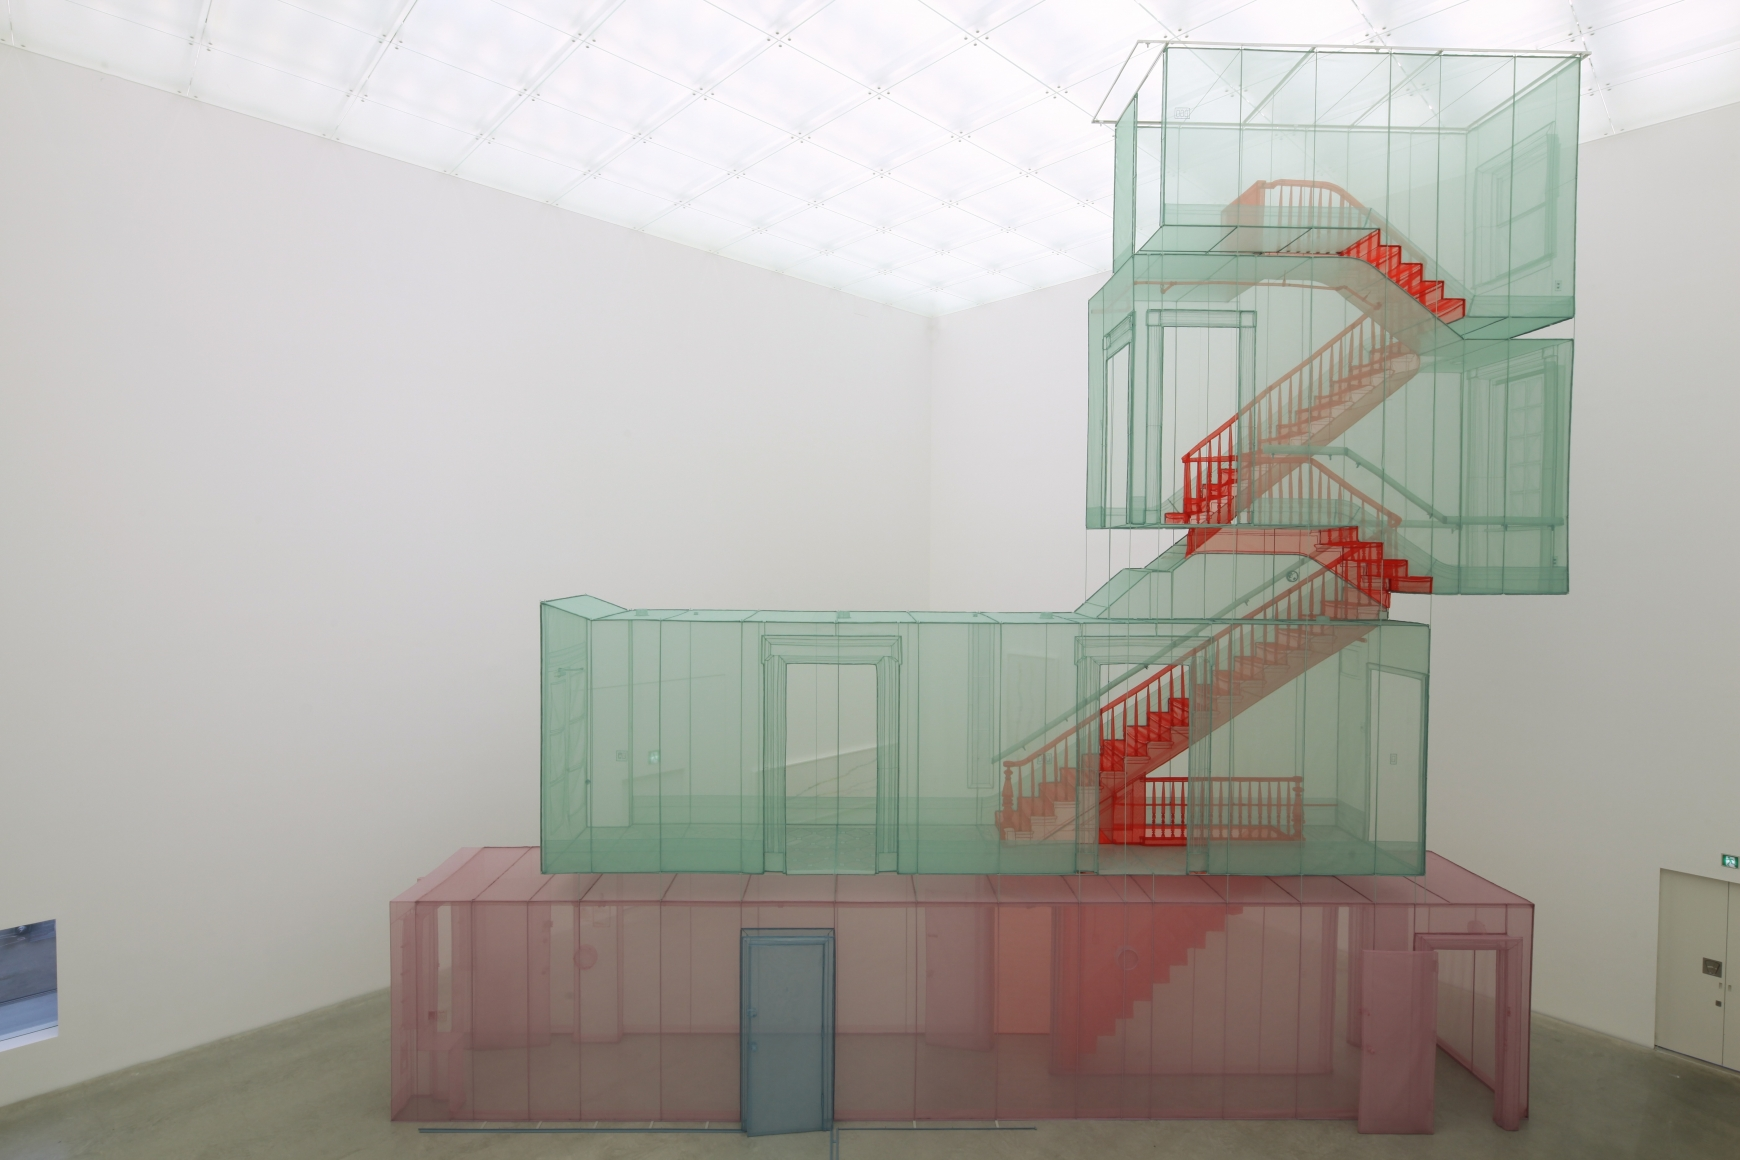 DO HO SUH, 348 West 22nd Street, Apt. A, Corridor and Staircase, New York NY 10011, USA,2011-2015